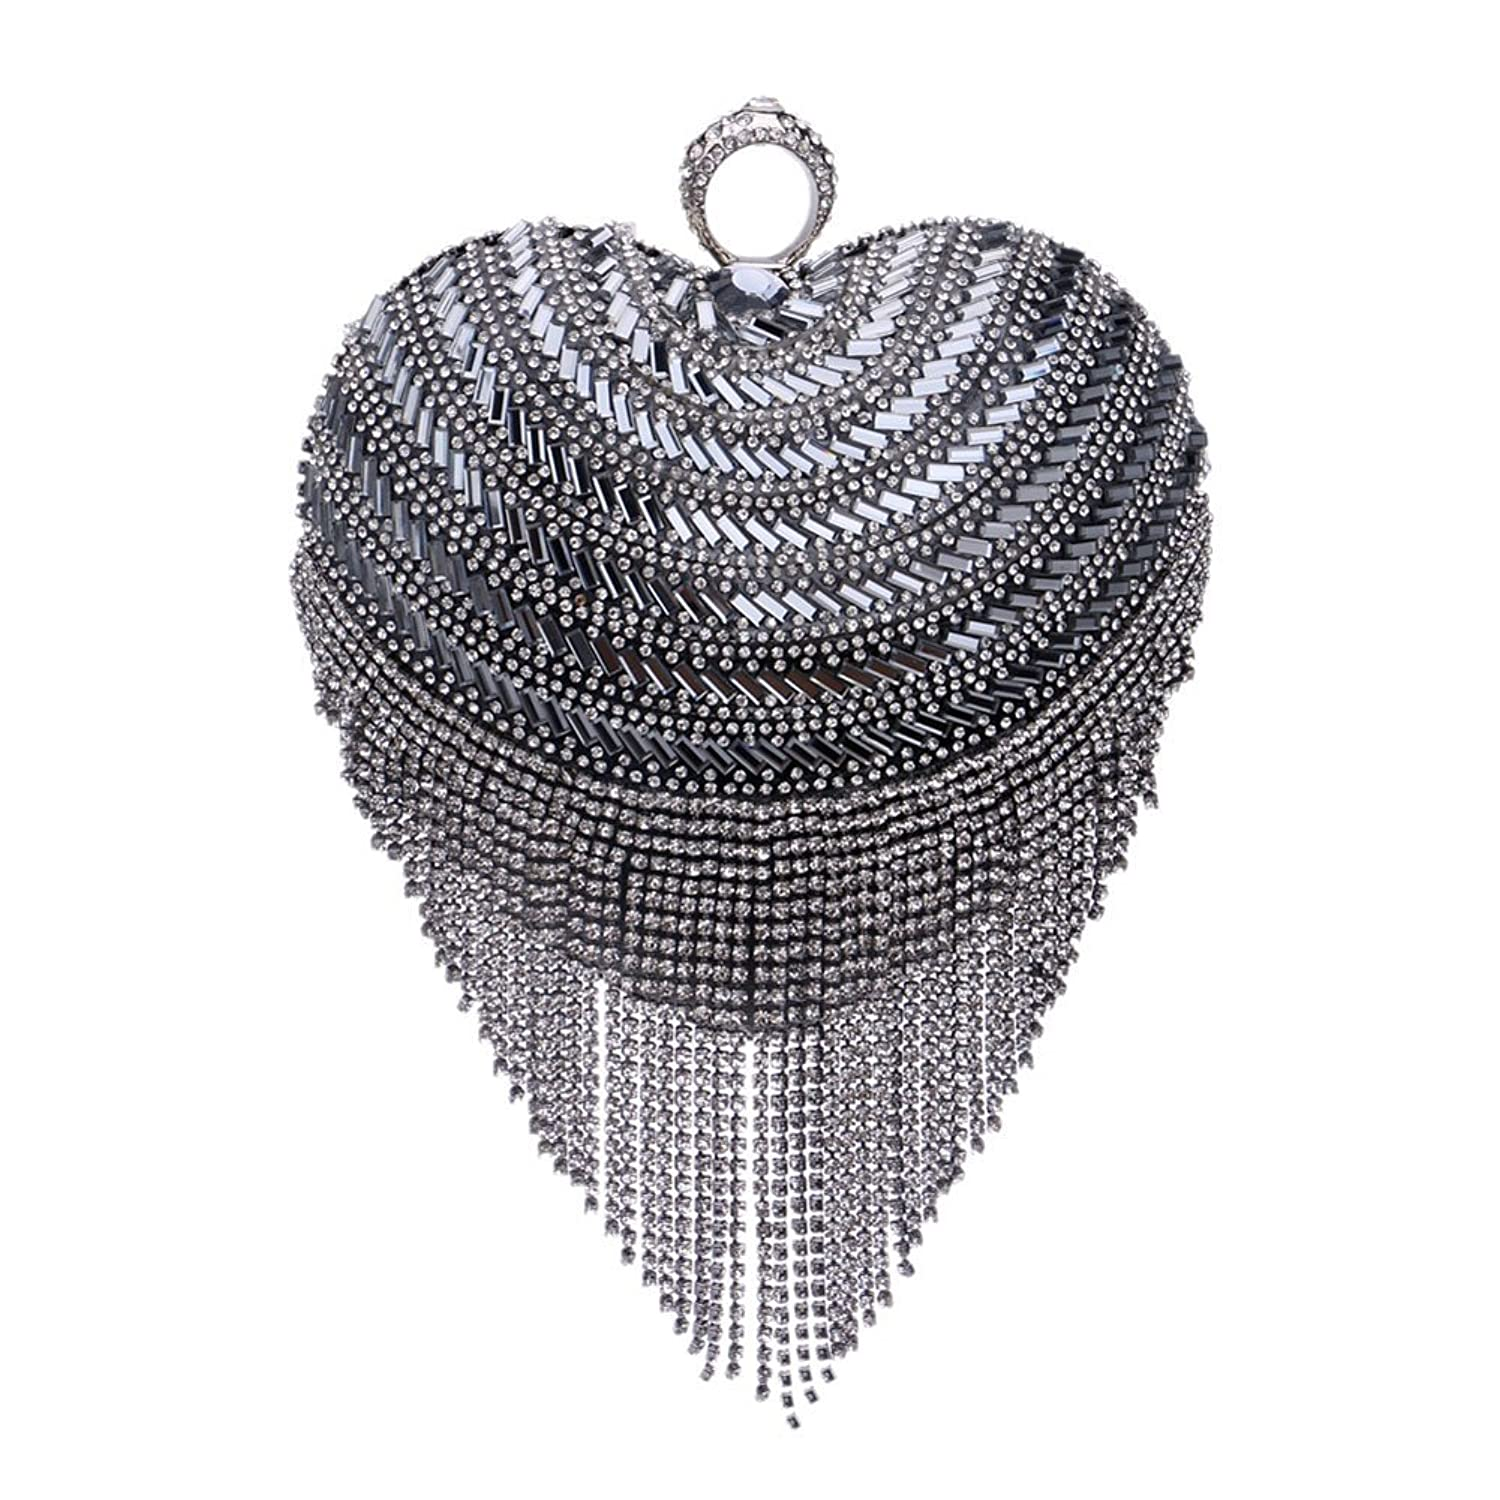 Mlotus Women's Crystal Rhinestone Evening Bag Clutch Cocktail Party Handbag